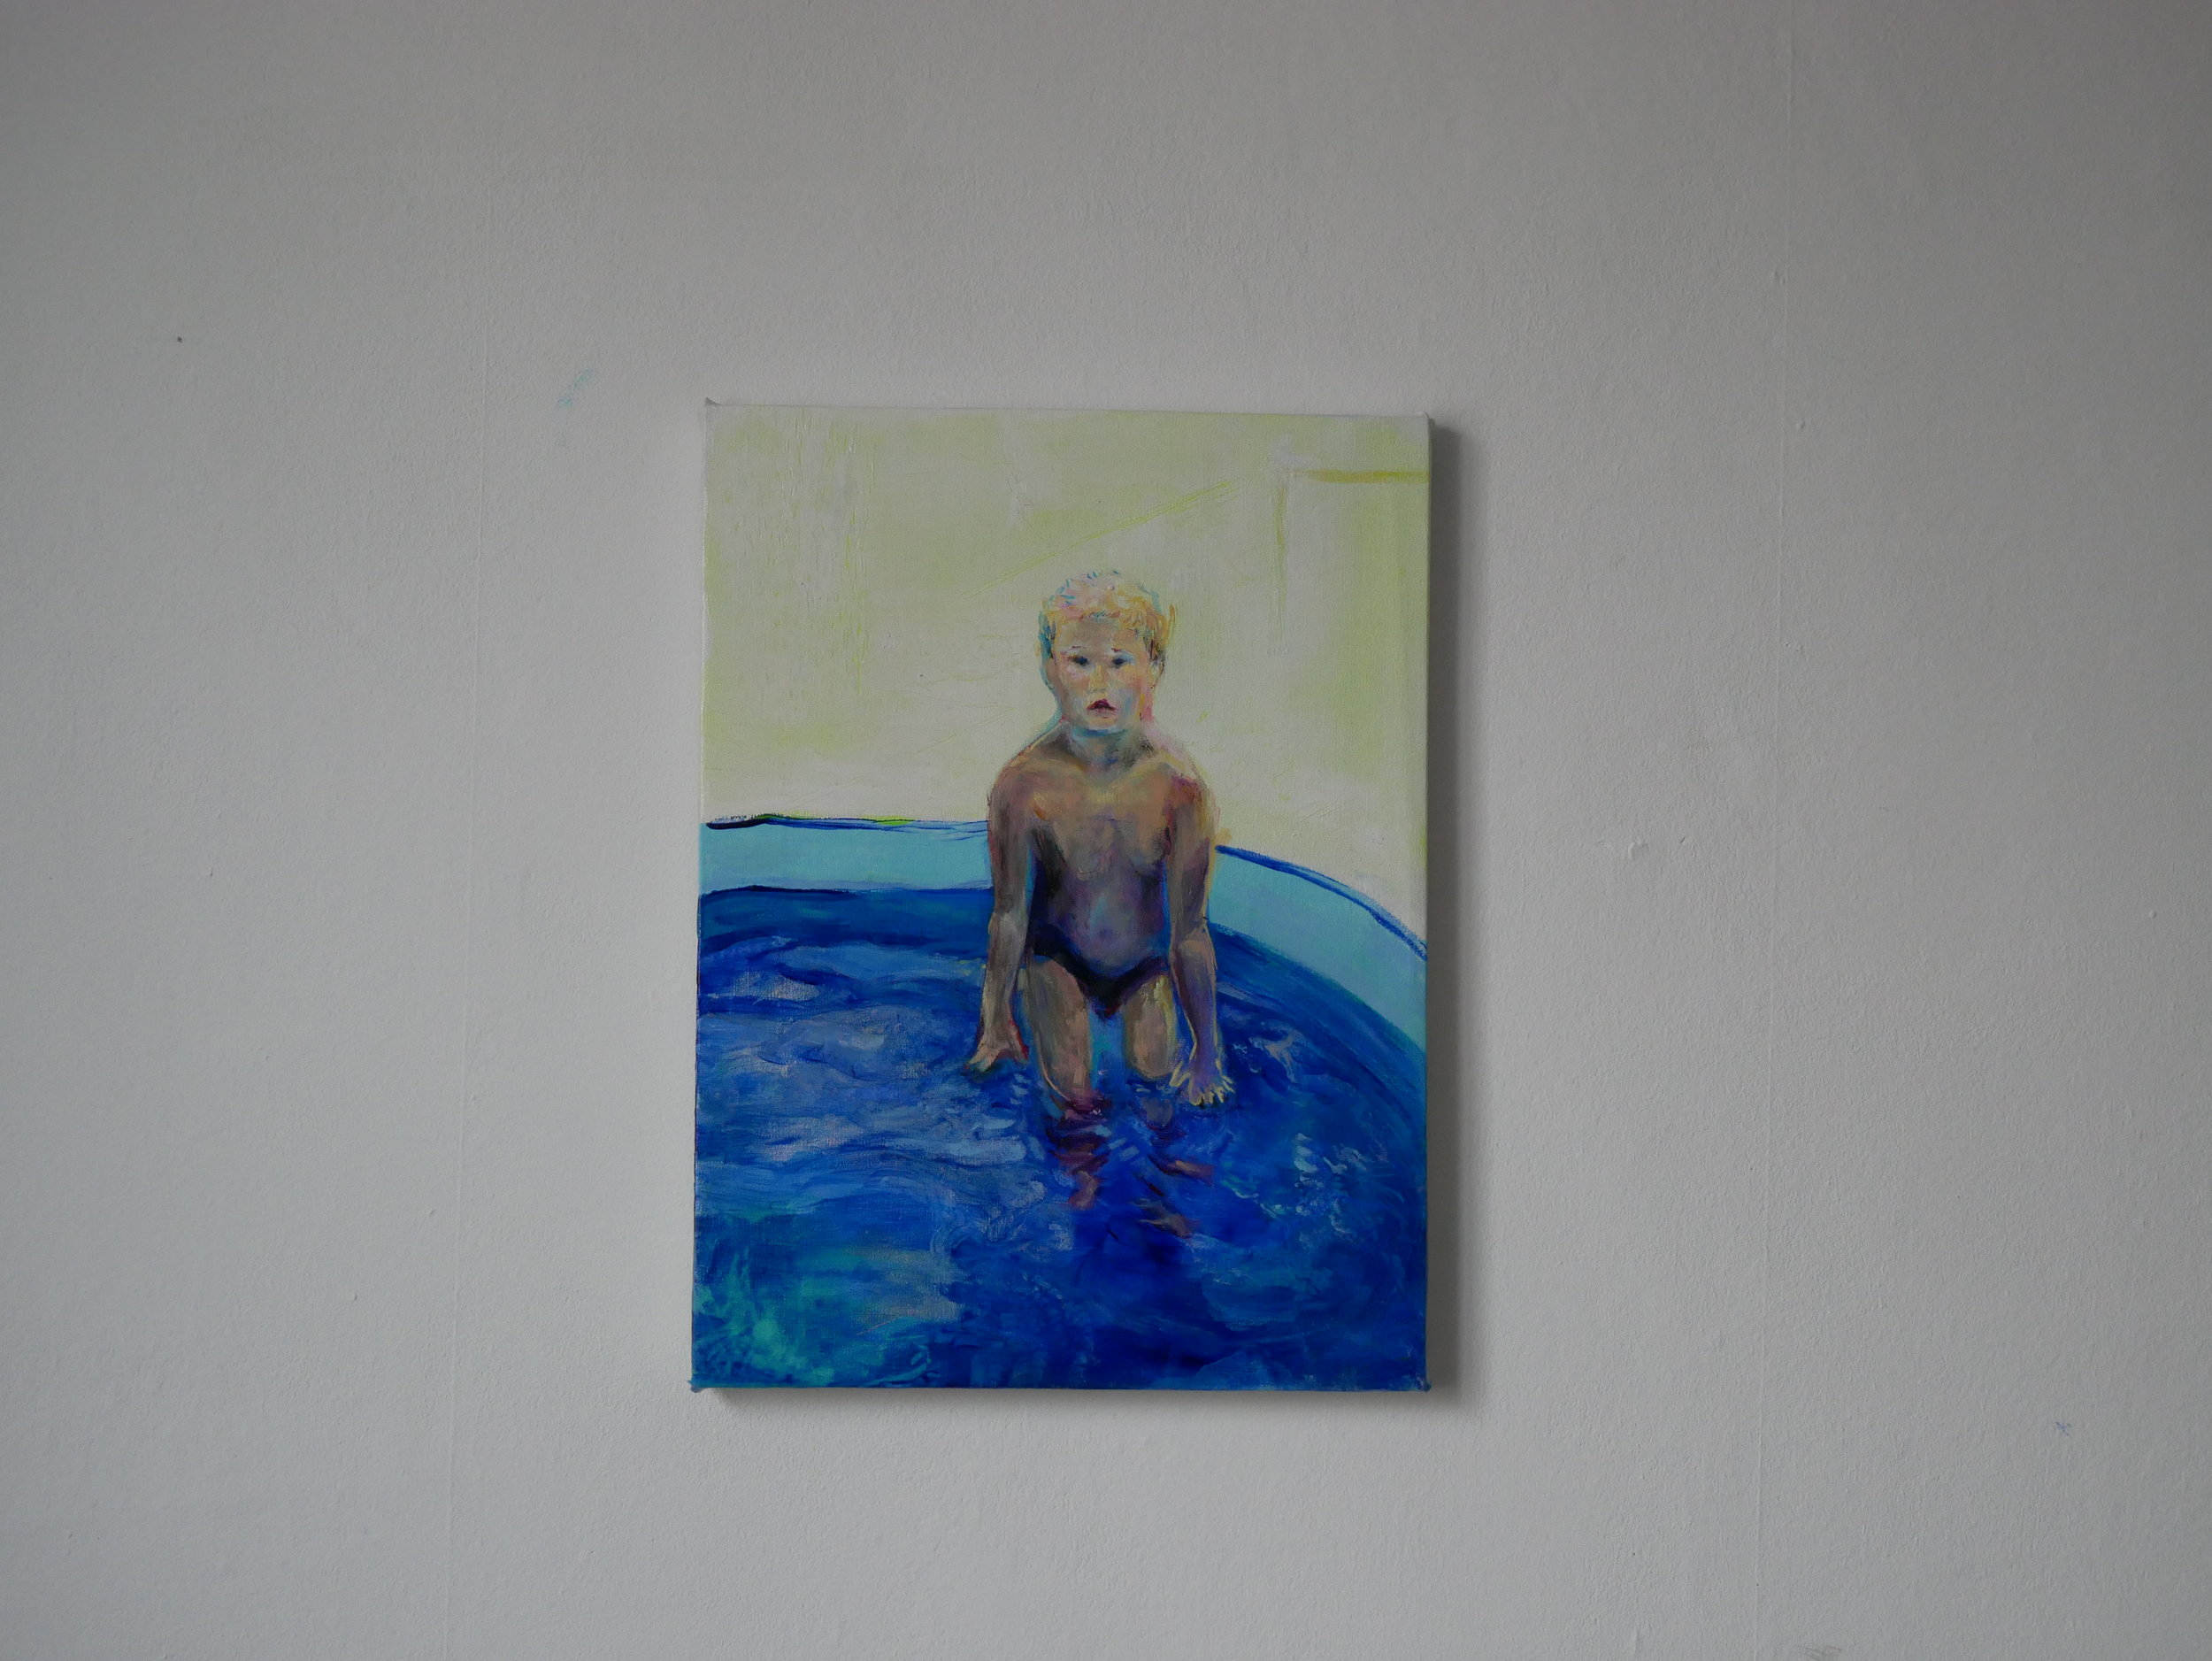 Studie of Aquatic Ape 3 . Oil on canvas. 40 x 30 cm